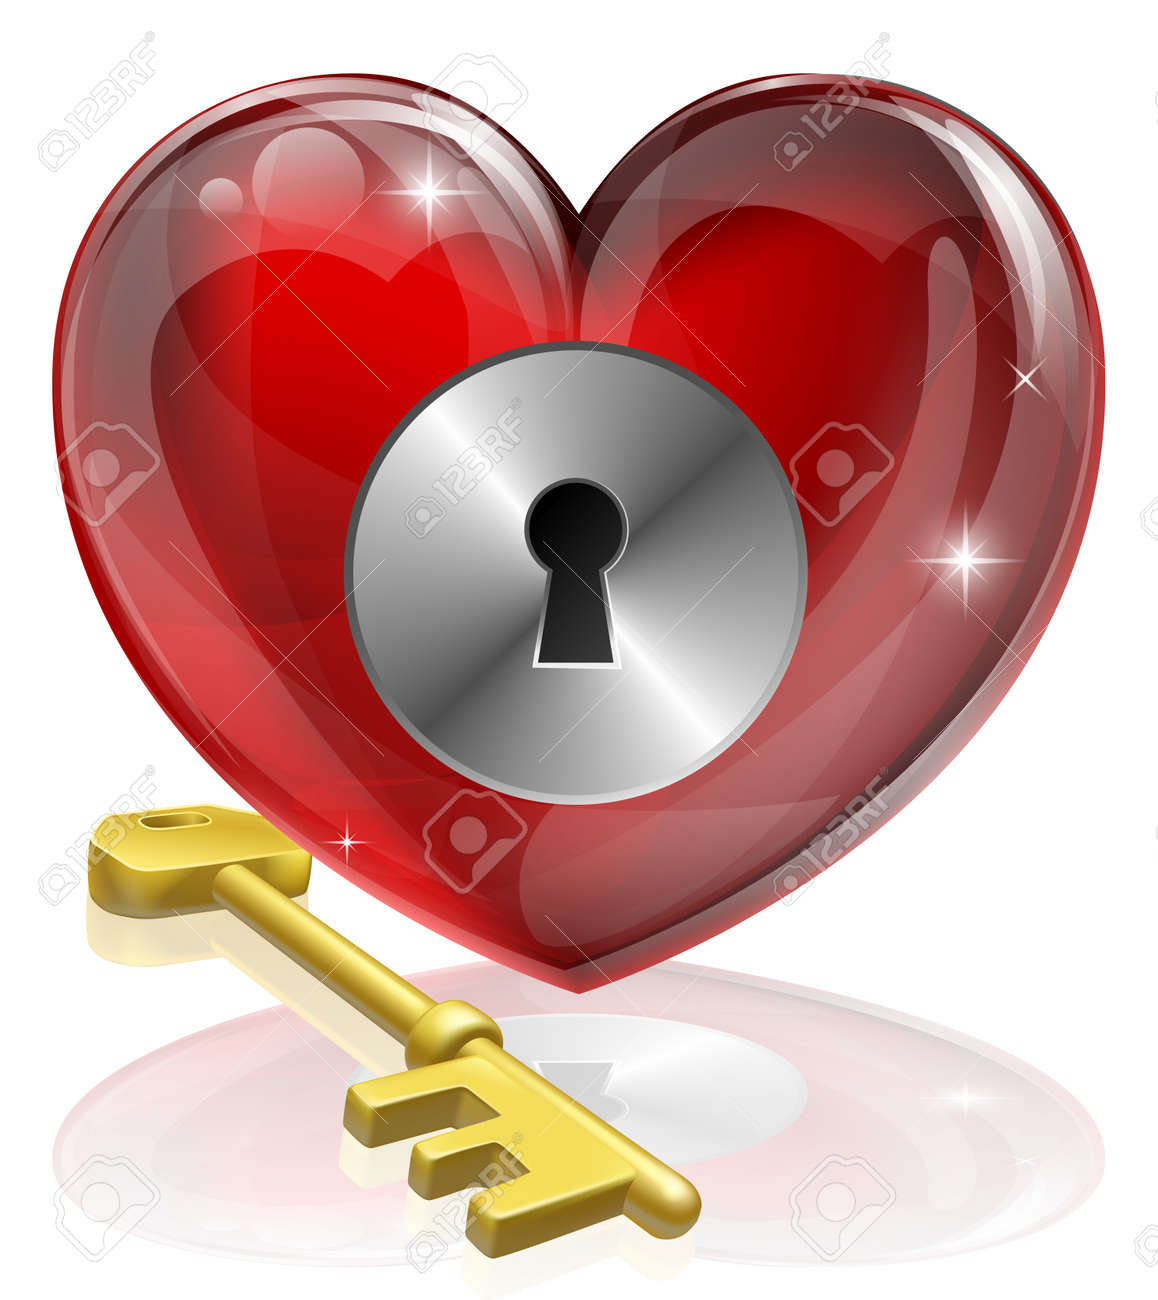 Heart lock and key concept illustration, could be symbol for finding love or repressing feelings or being guarded Stock Vector - 14268069